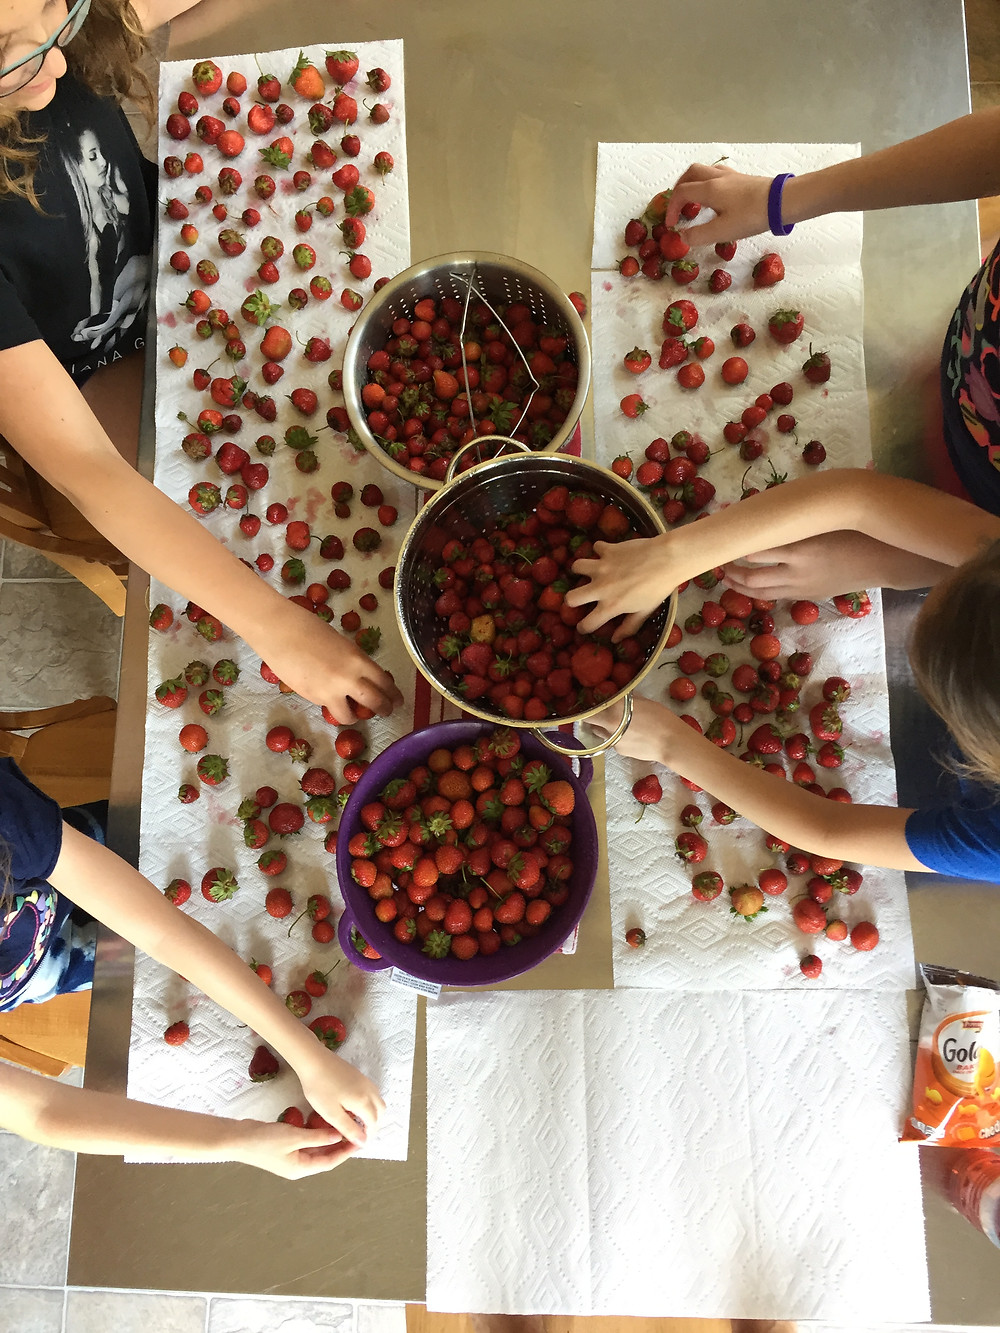 Sorting the strawberries!